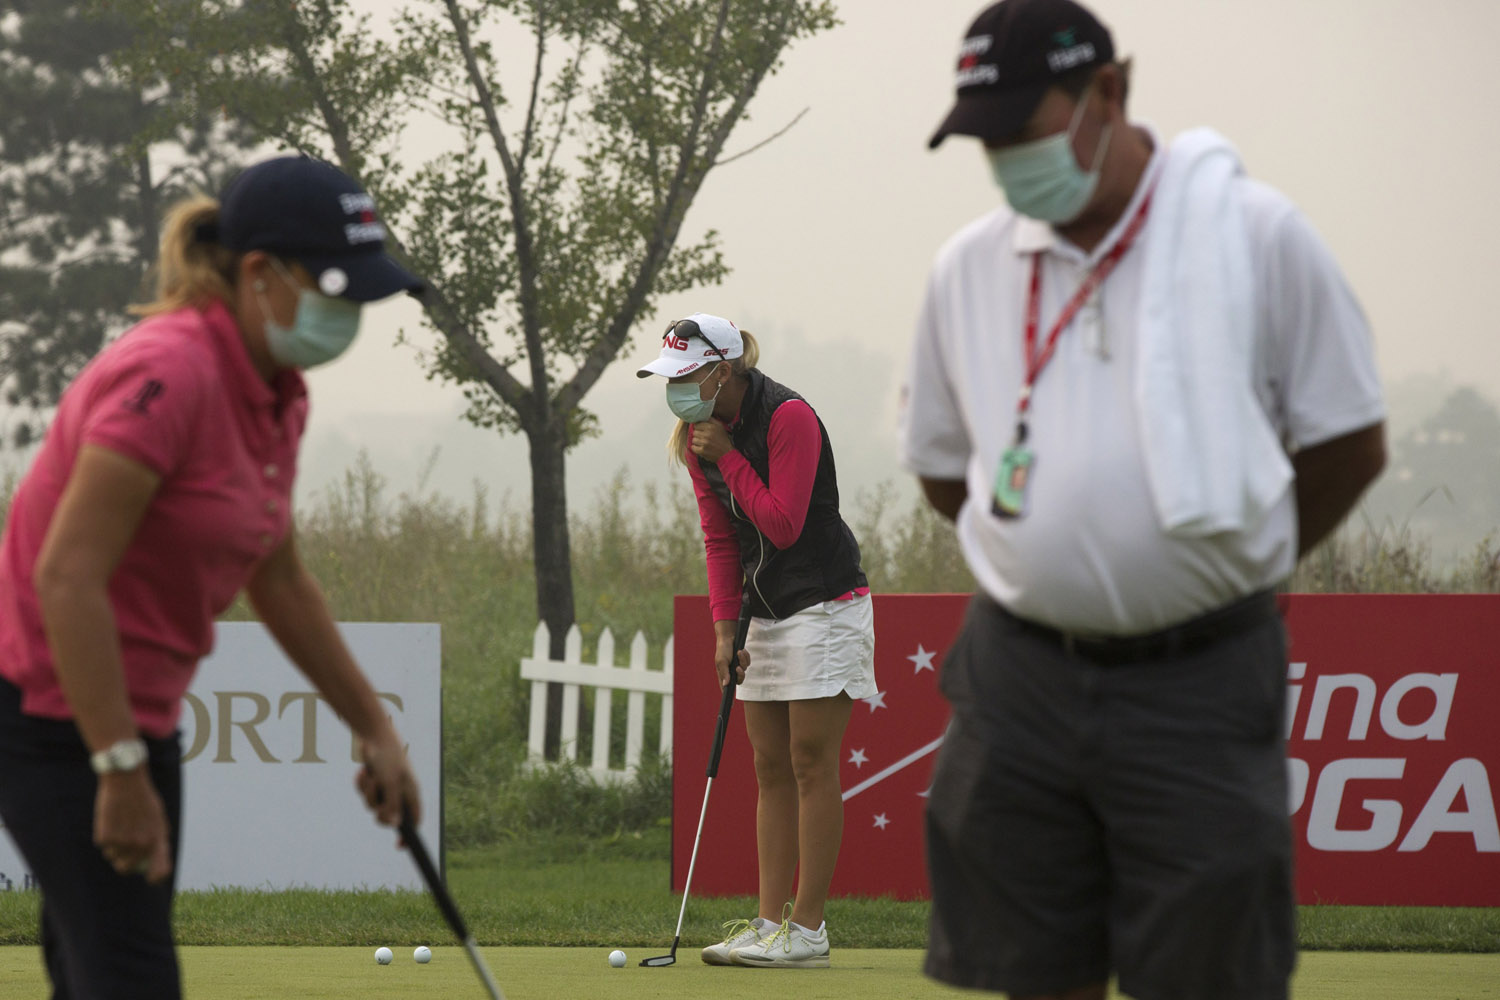 Oct. 5, 2013. Golfers wear masks as they practice putting on a hazy morning for the third round of the Reignwood LPGA Classic golf tournament at Pine Valley Golf Club on the outskirts of Beijing.